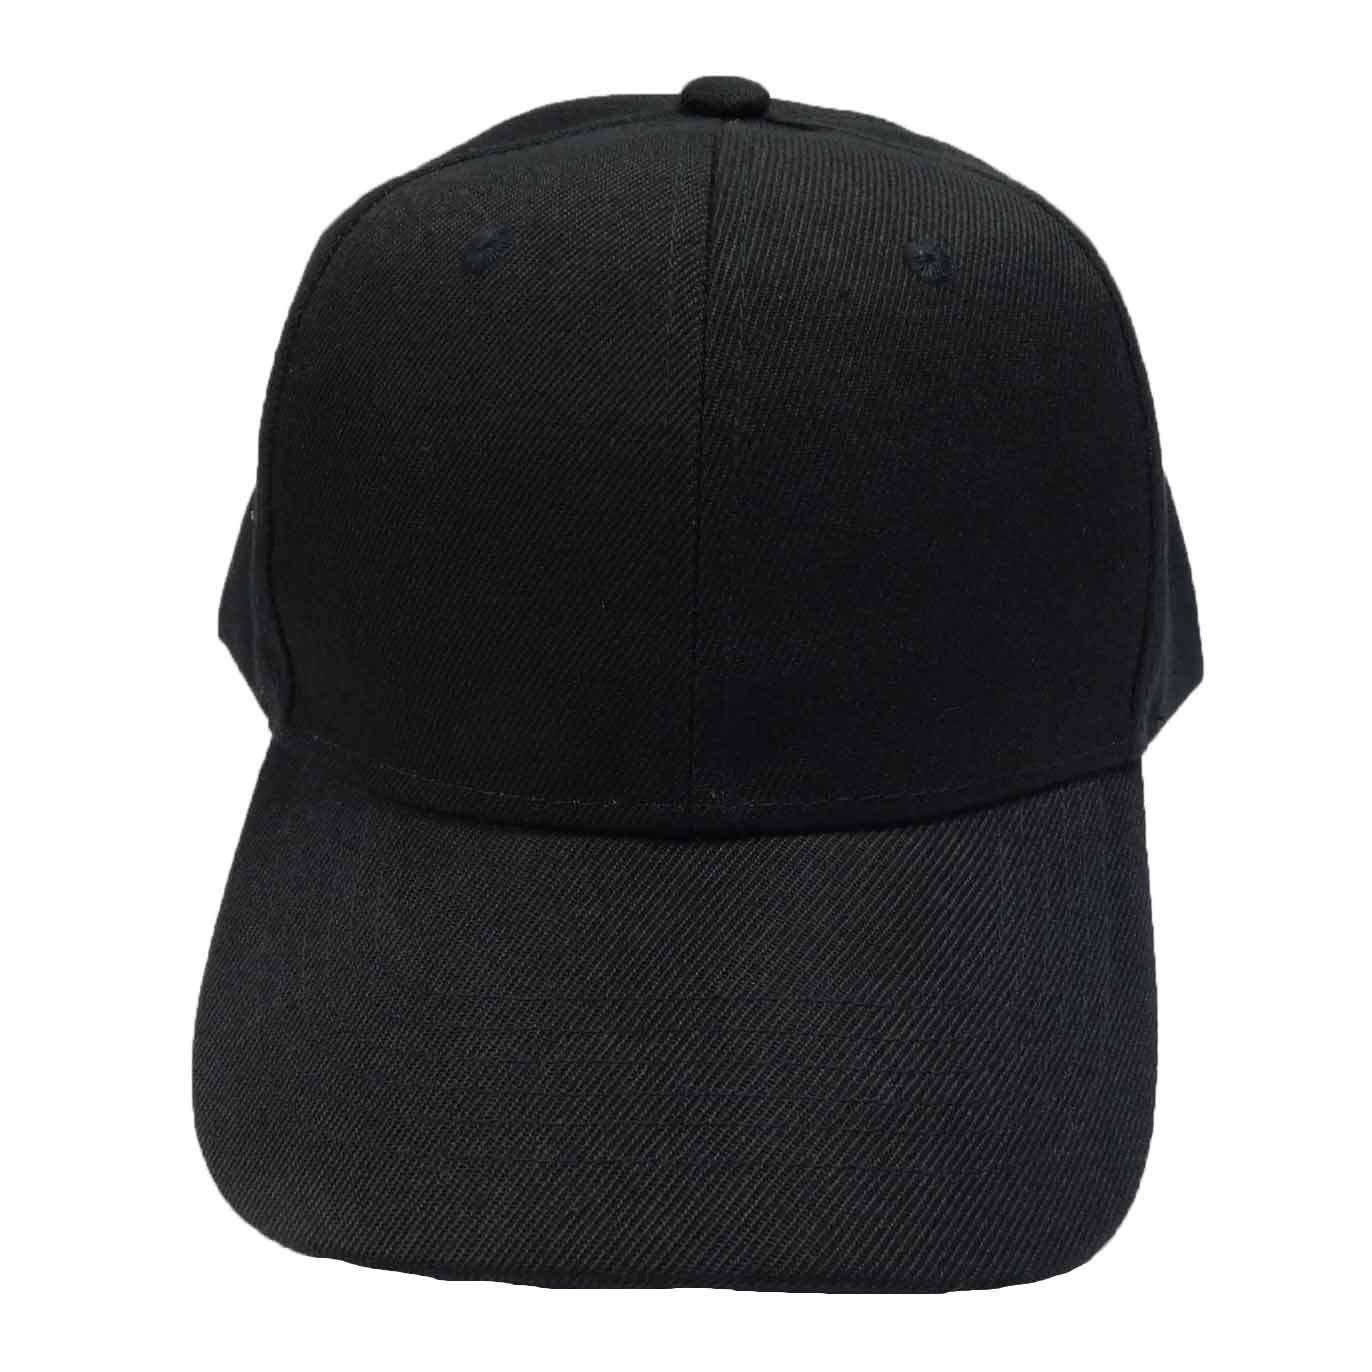 Baseball Cap with Stitched Bill - SetarTrading Hats